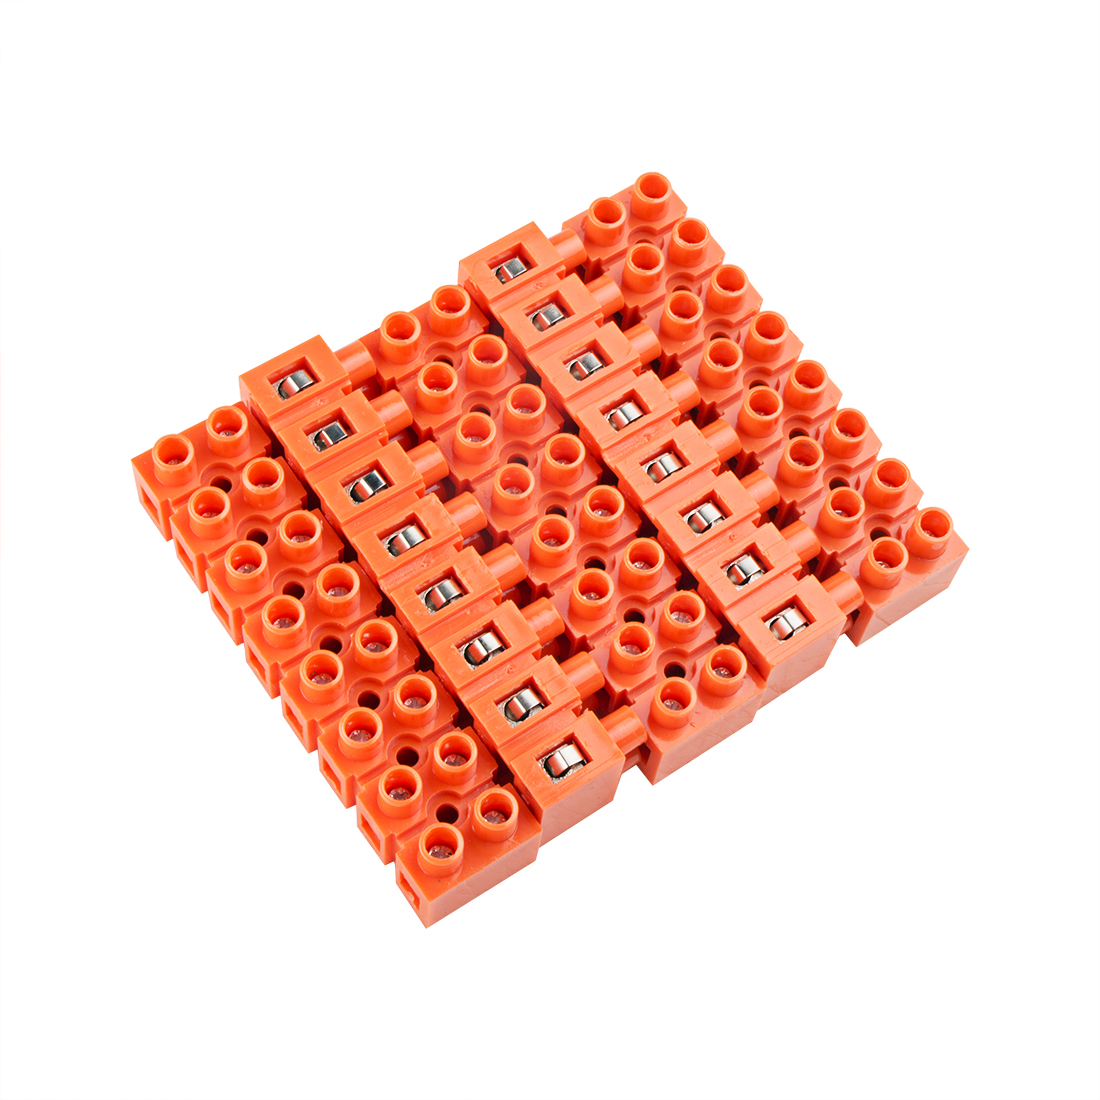 5pcs 600V 36A Dual Row 8 Positions Screw Terminal Electric Barrier Strip Block